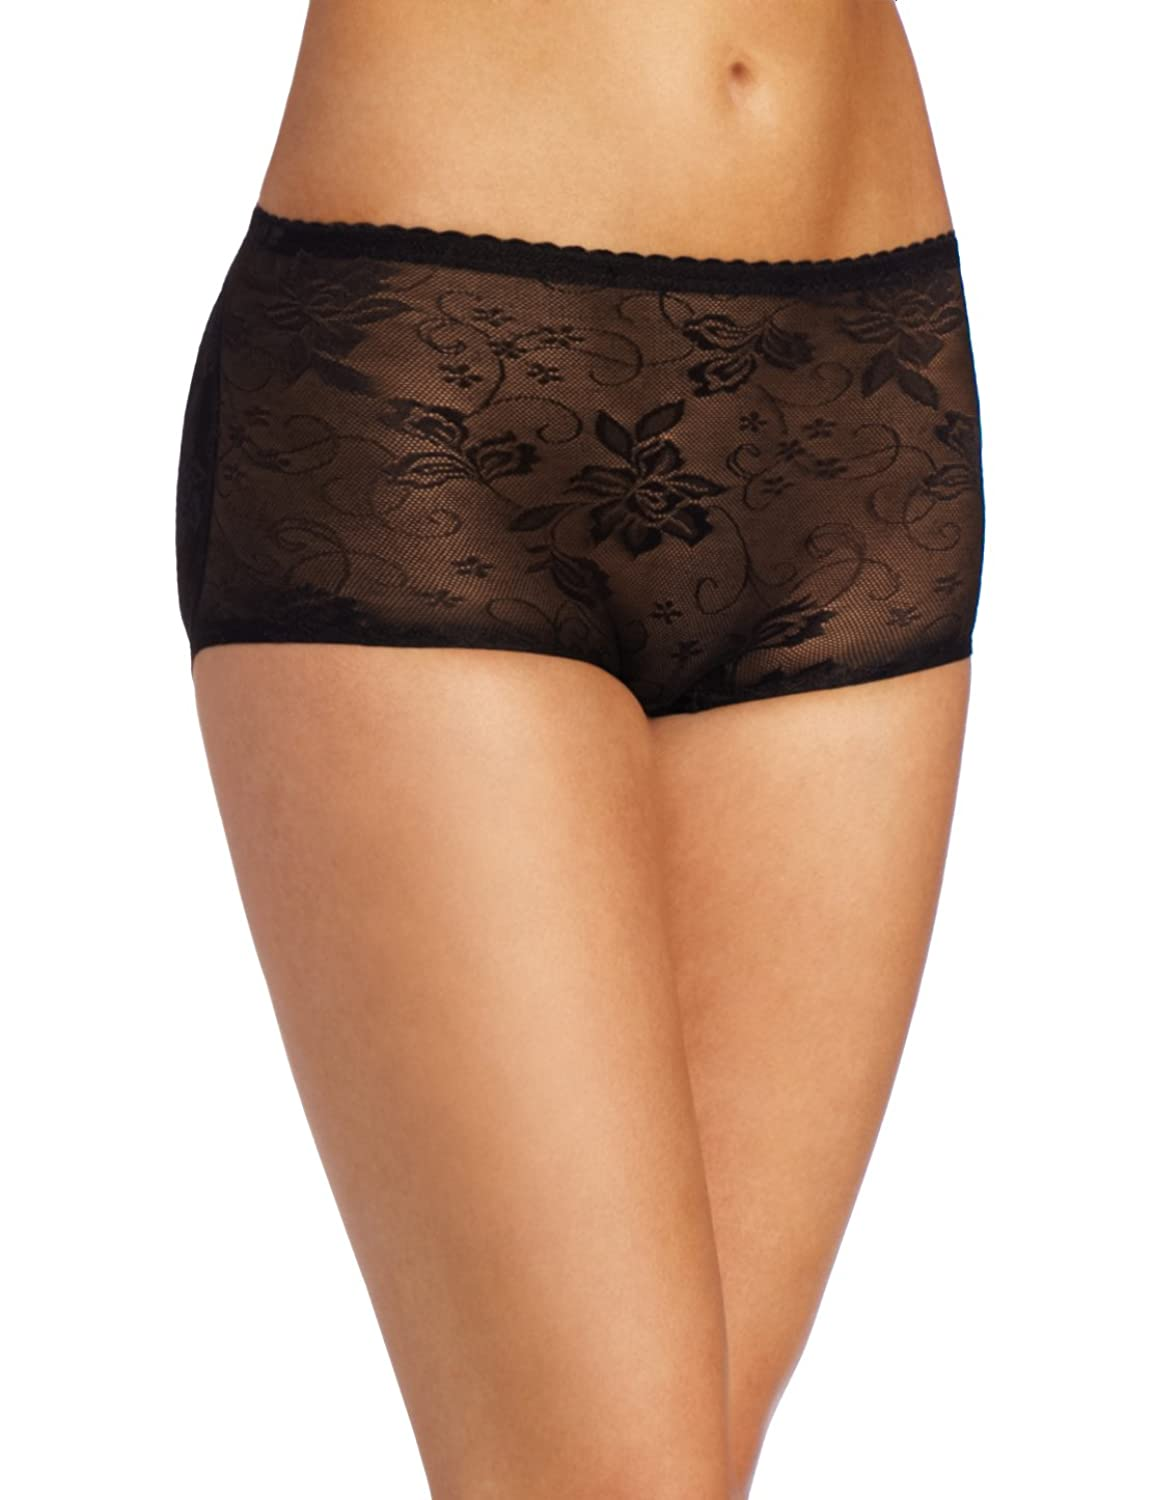 Heavenly Shapewear Women's Jacquard Padded Panty, Black, Small ...